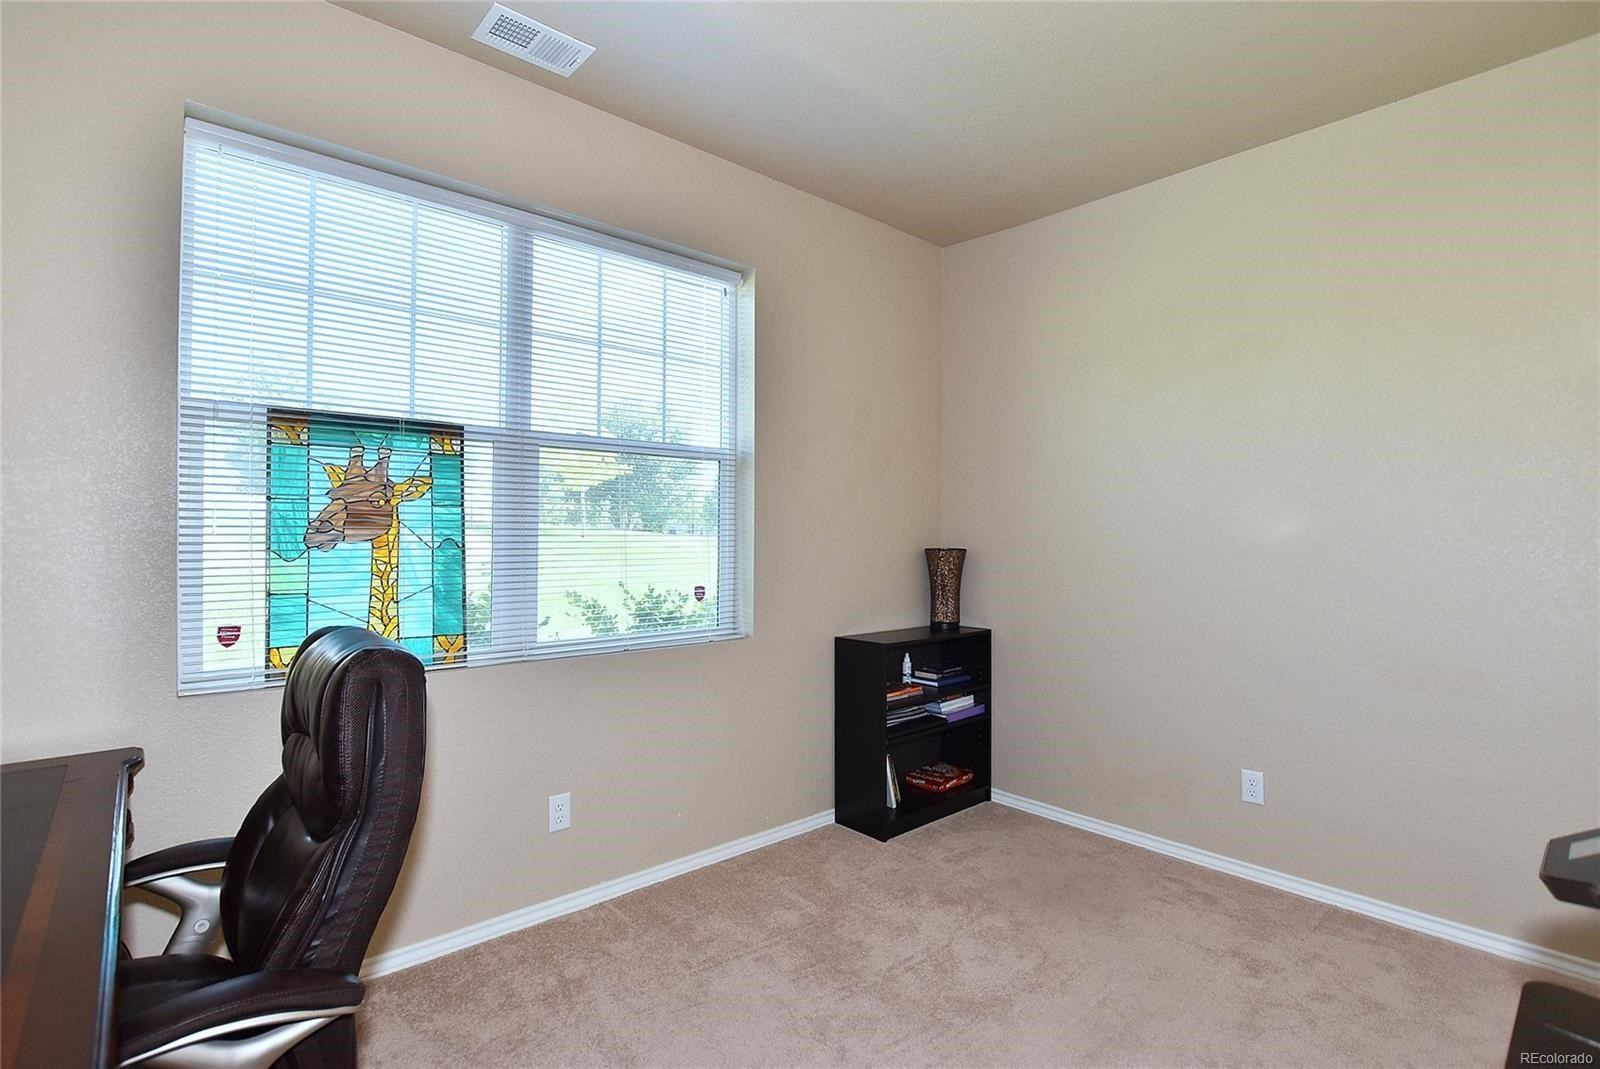 MLS# 5772080 - 23 - 6915 W 3rd Street #111, Greeley, CO 80634